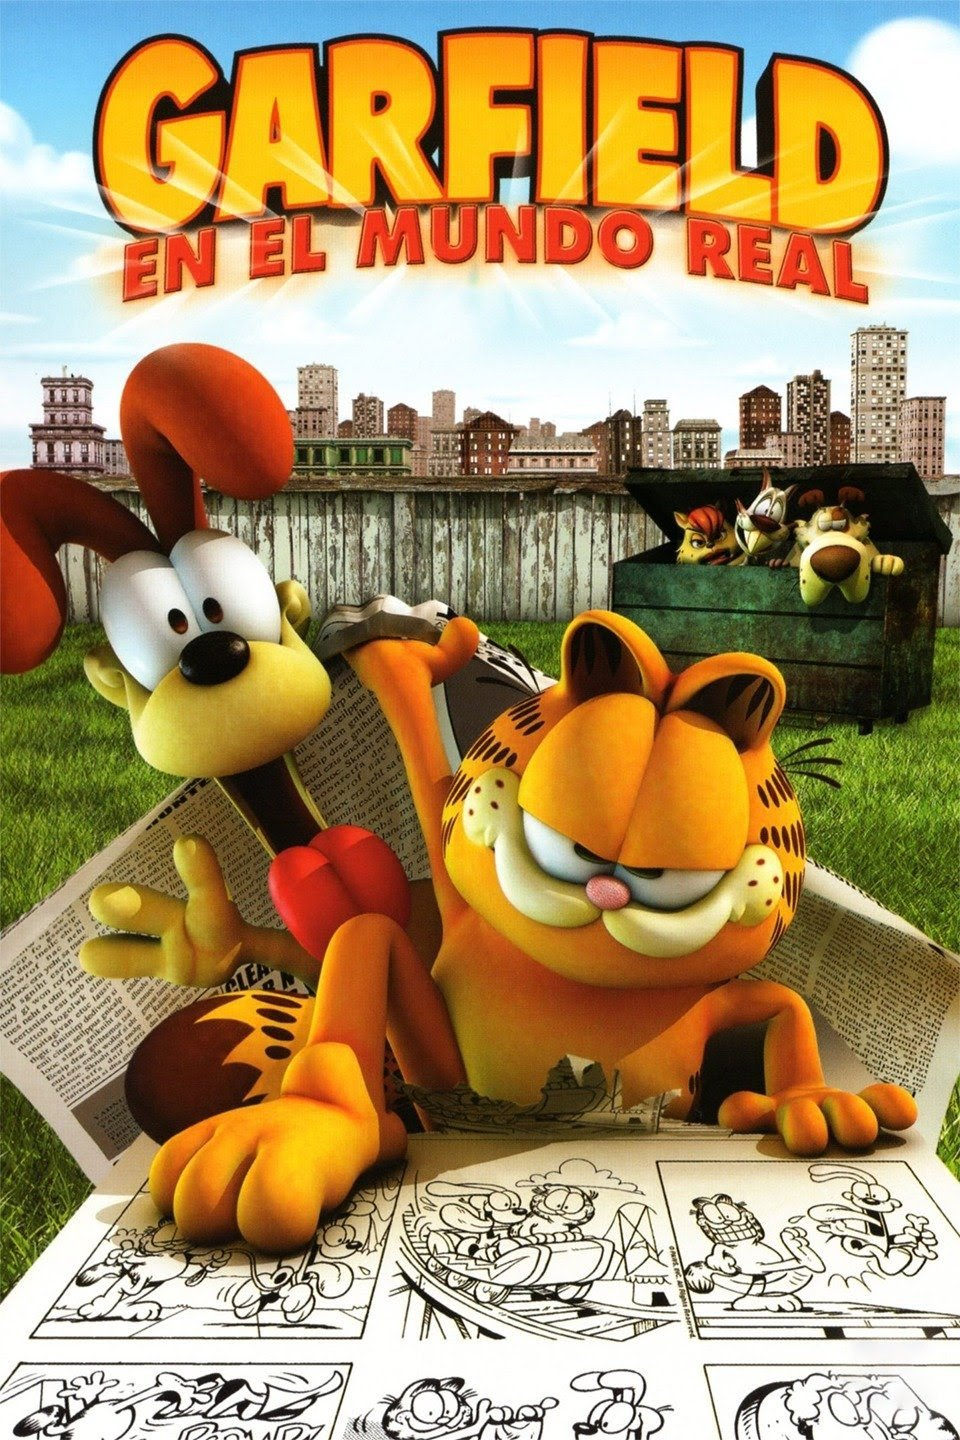 Garfield: En el mundo real